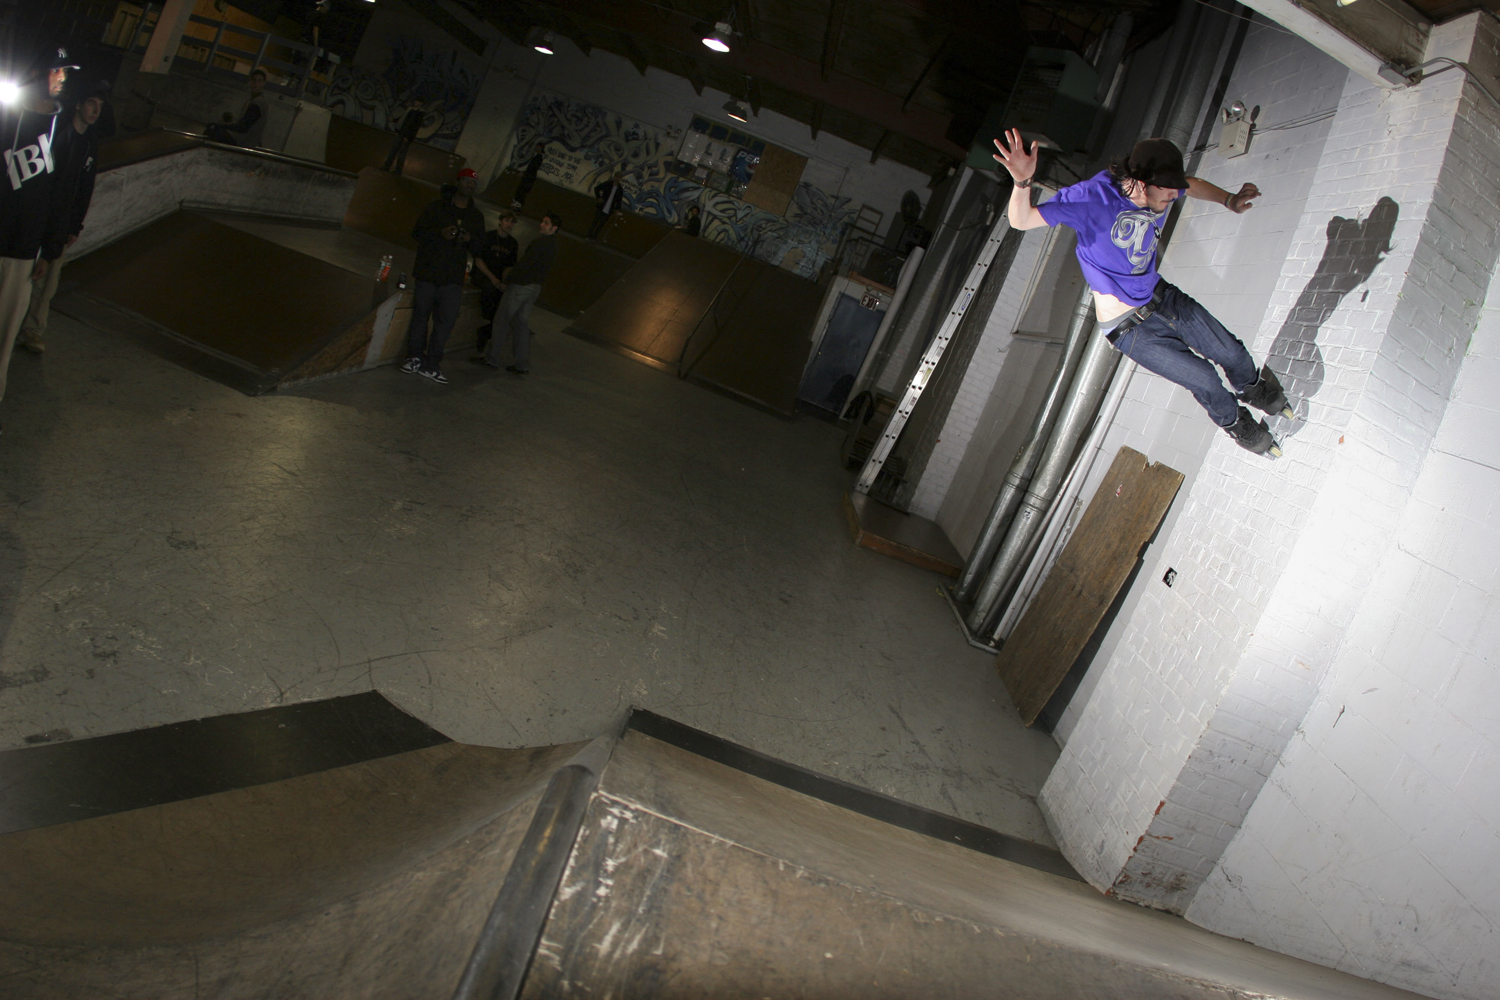 Colin Kelso - Launch to A/O Wallride at b.Unique's Underground Skate Park in Brooklyn, NY in 2006  Canon 20D, Canon 15mm f/2.8 fisheye (iso100, f3.2, 1/250s)